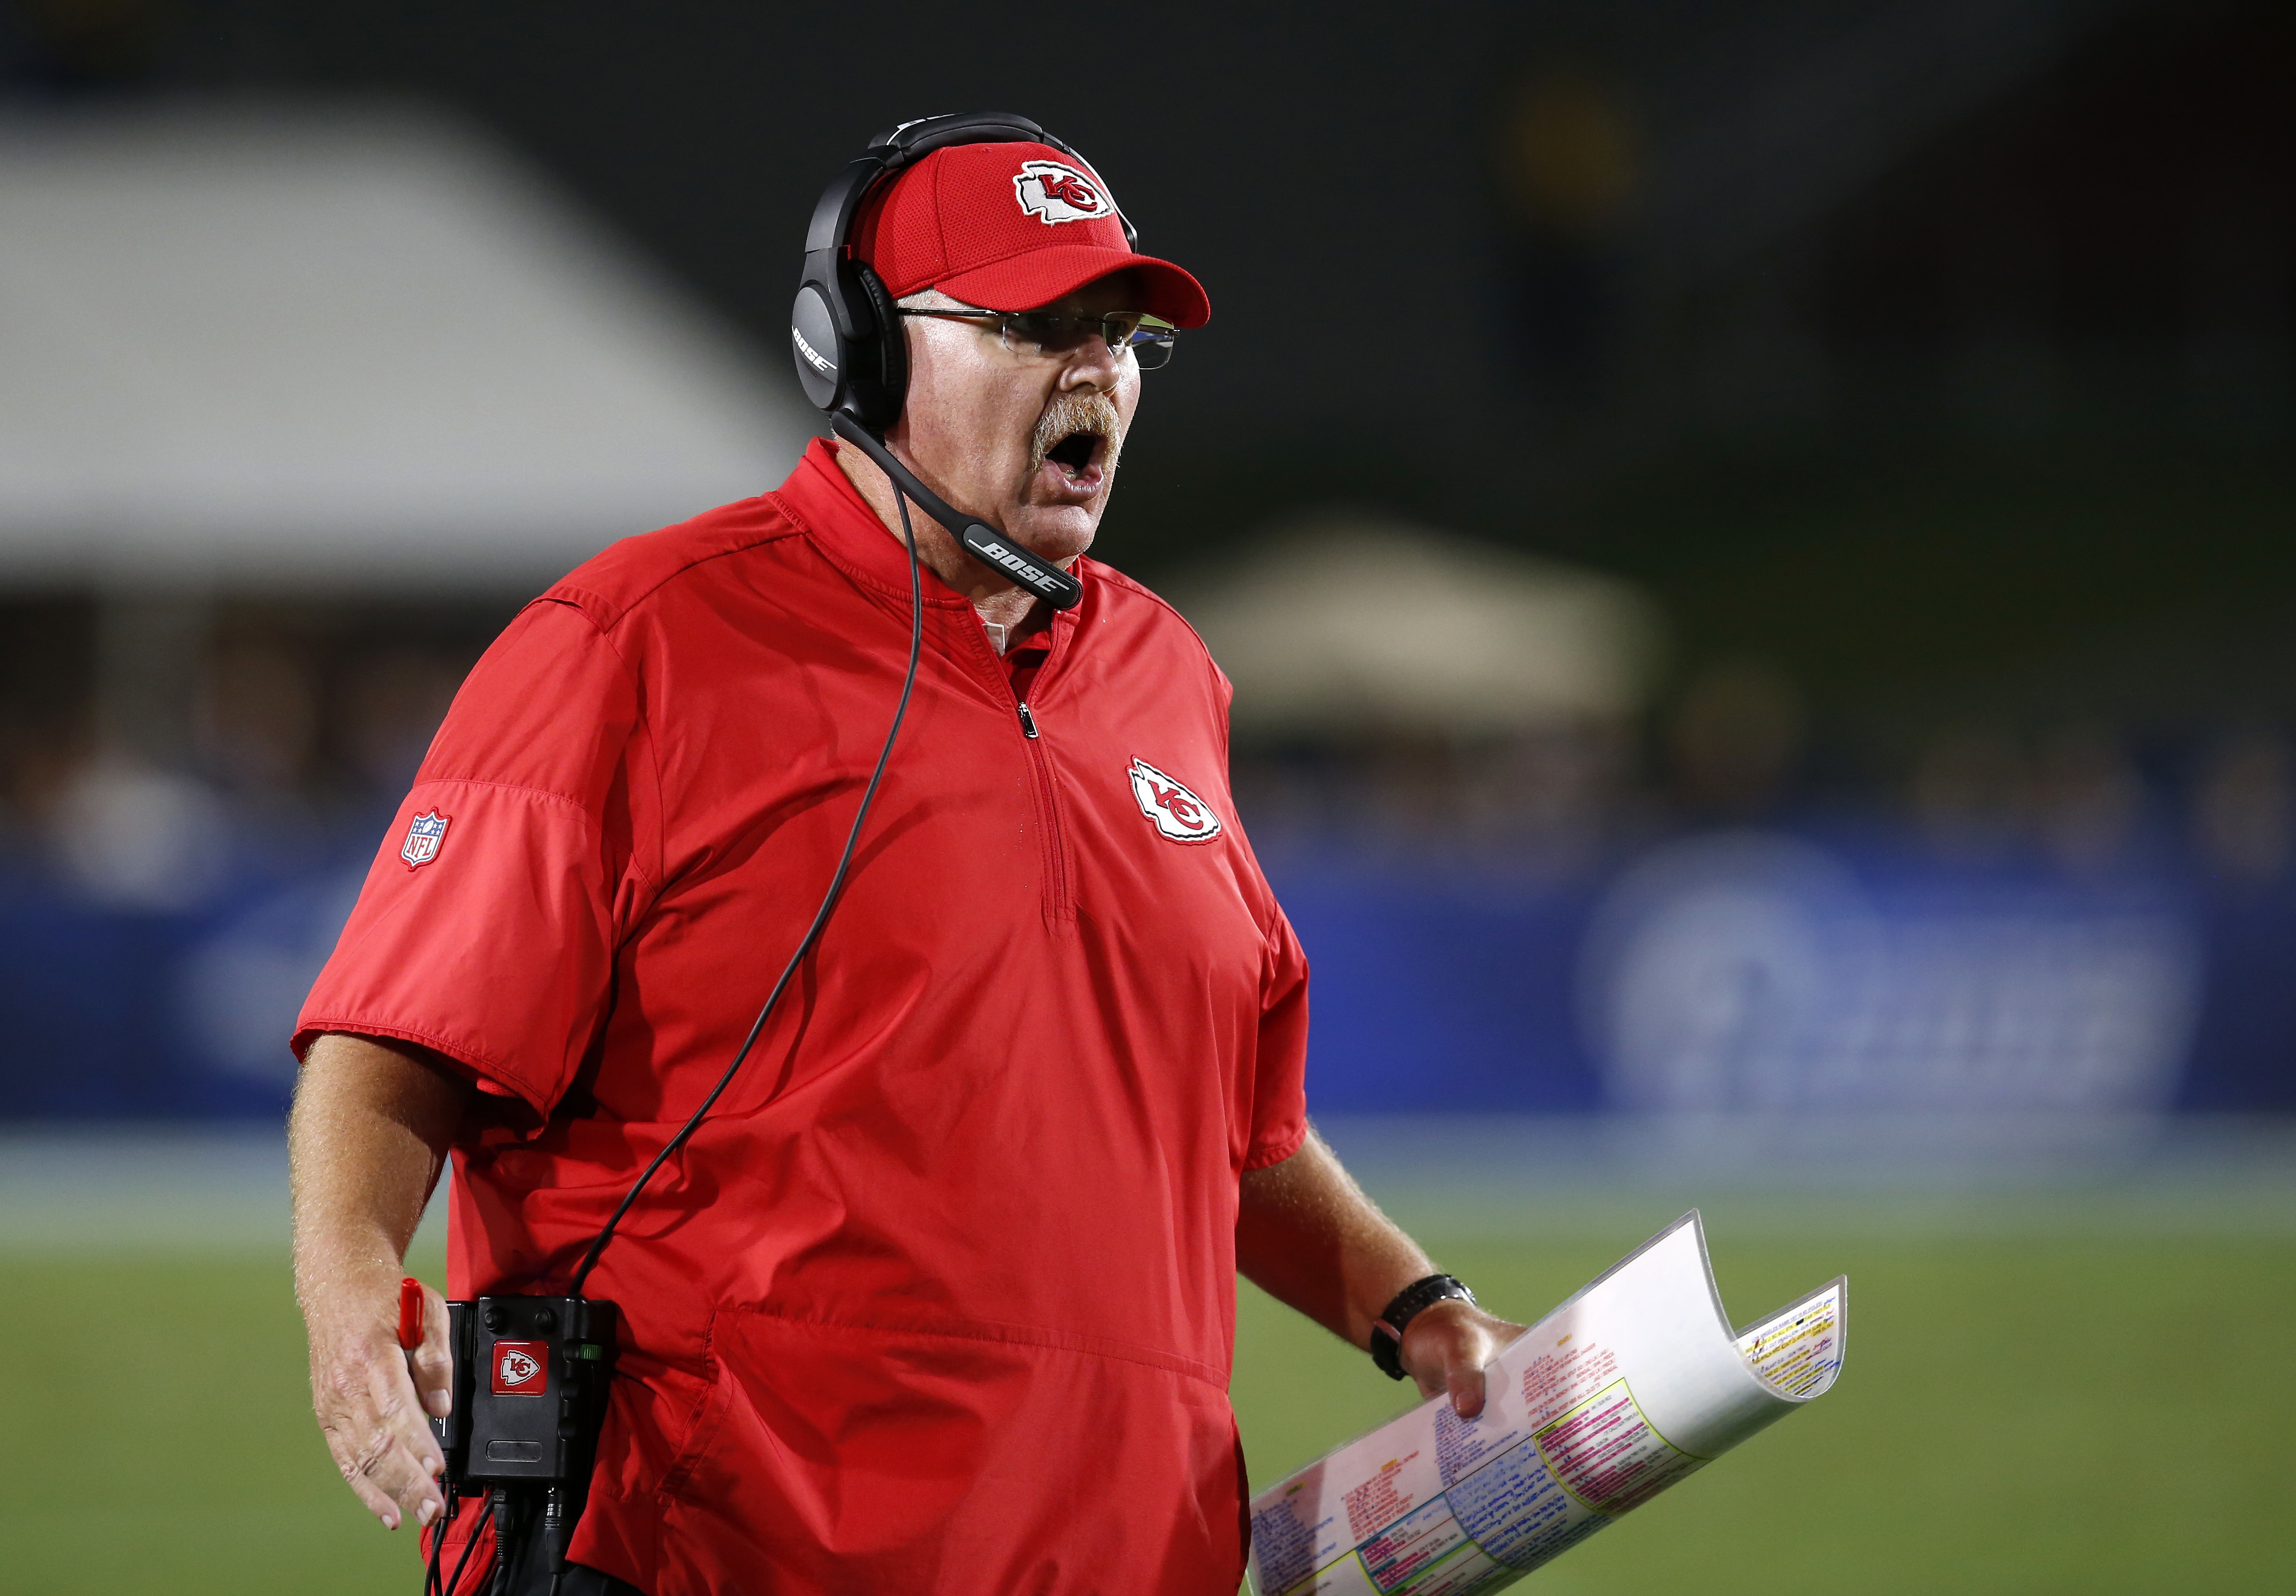 Kansas City Chiefs head coach Andy Reid yells from the sideline during the second half of a preseason NFL football game against the Los Angeles Rams, Saturday, Aug. 20, 2016, in Los Angeles. (AP Photo/Rick Scuteri)